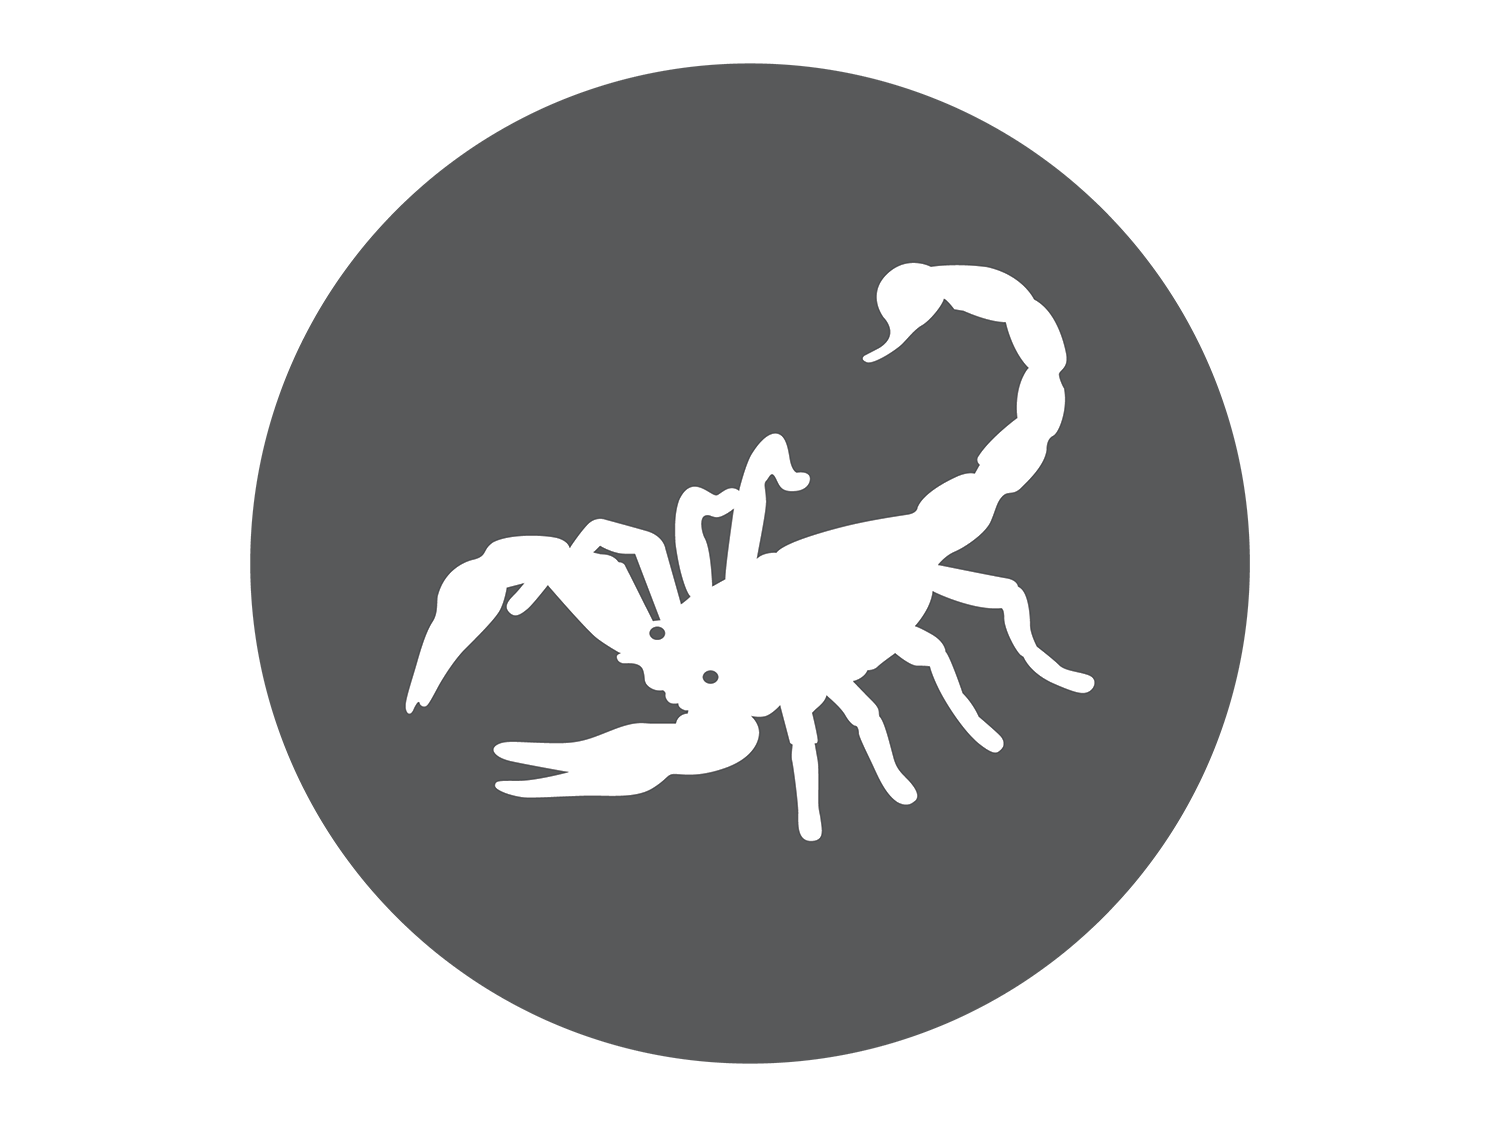 Scorpio the Scorpion - The Brave and Loyal Constellation